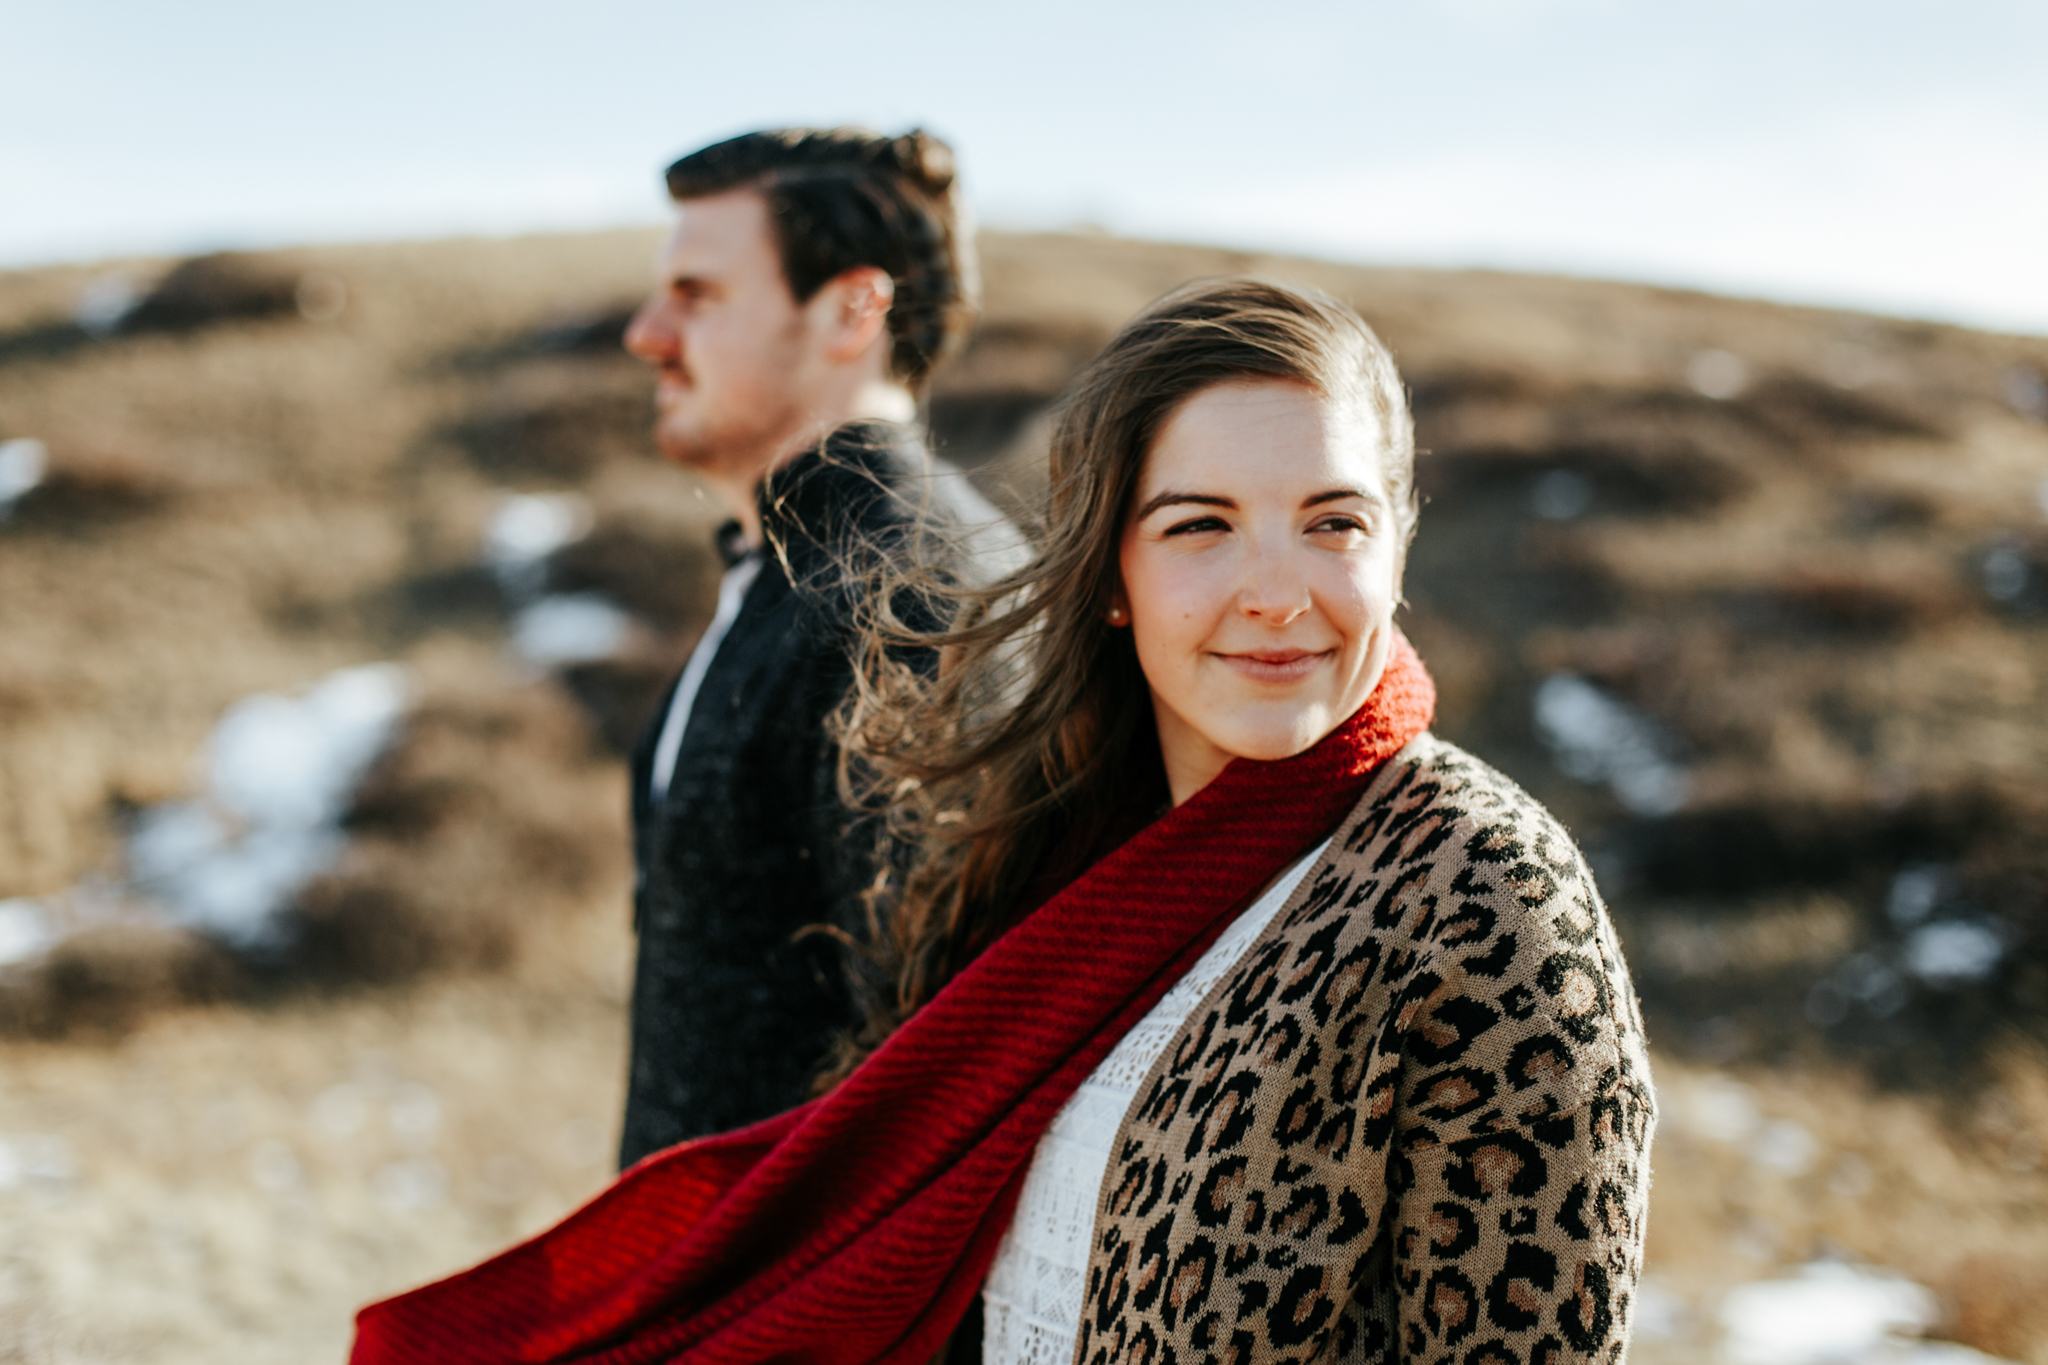 lethbridge-photographer-love-and-be-loved-photography-winter-engagement-emma-tanner-picture-image-photo-14.jpg